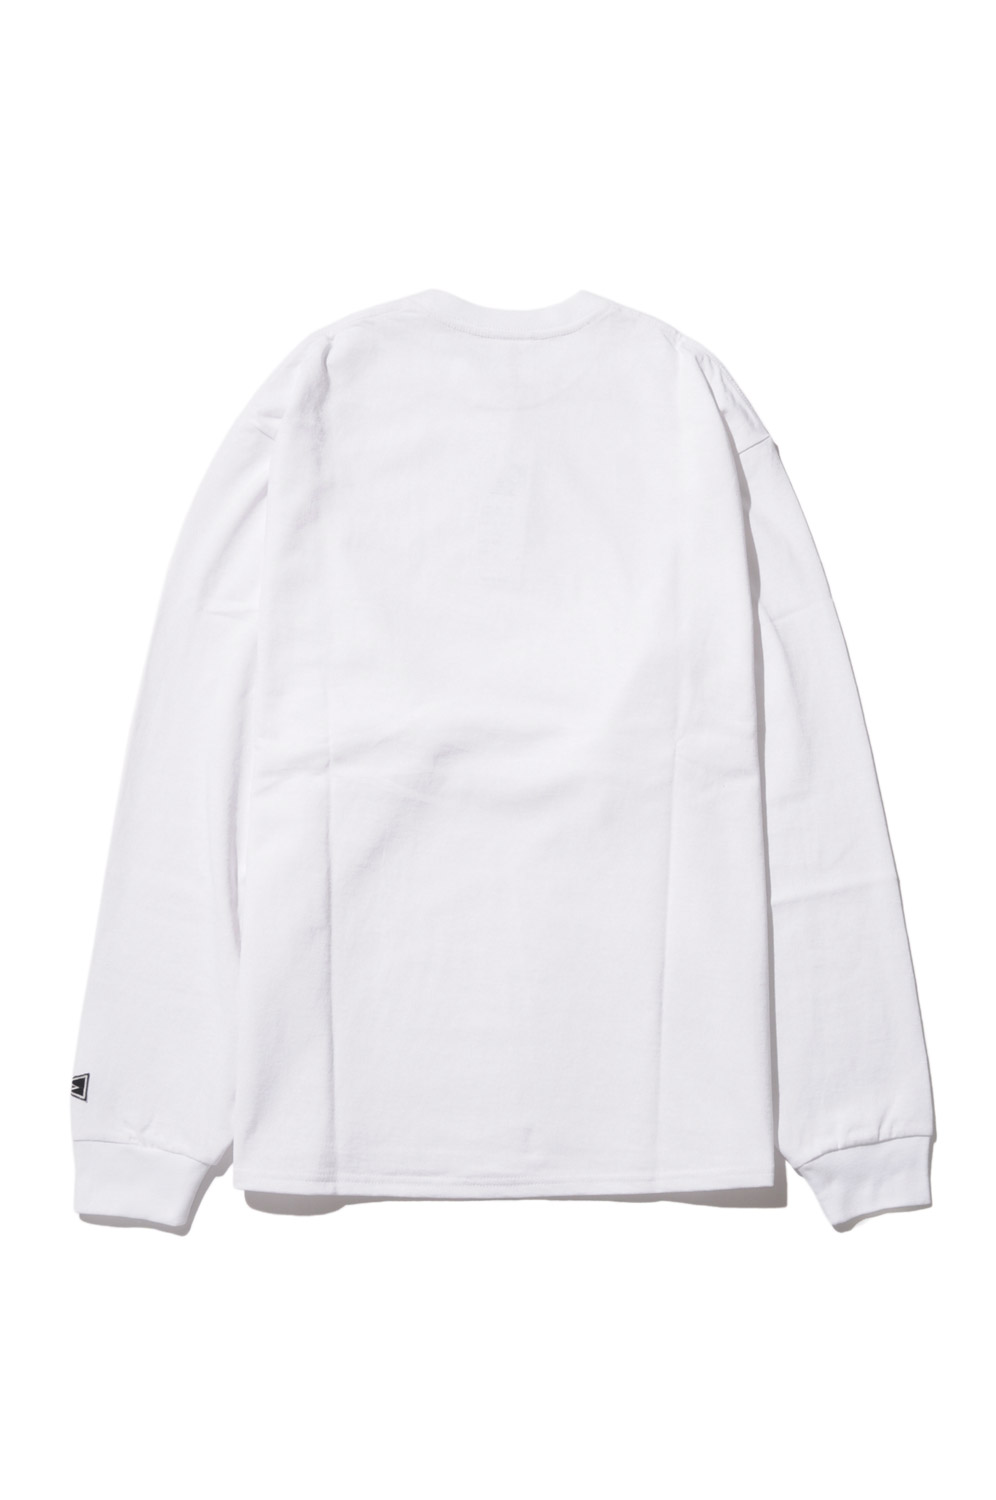 画像3: 【VOTE MAKE NEW CLOTHES】FAT L/S TEE